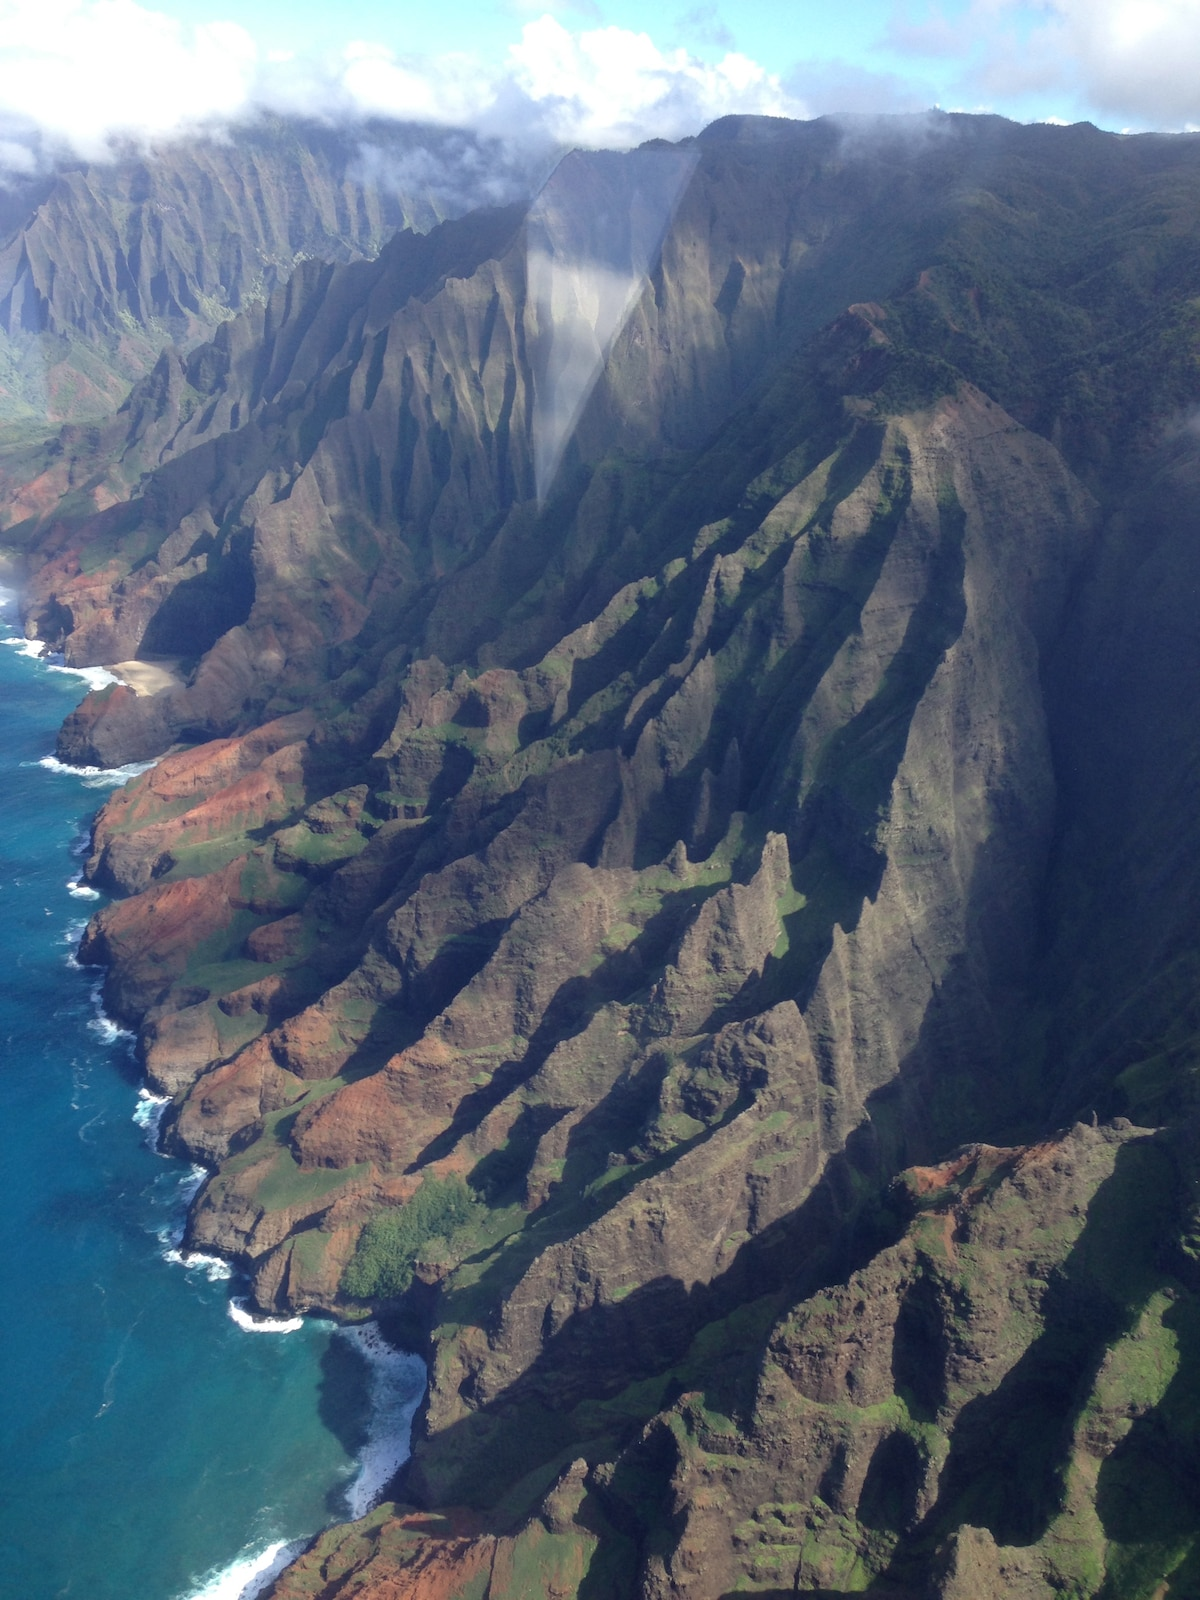 Beautiful NaPali coast as seen from a helicopter.